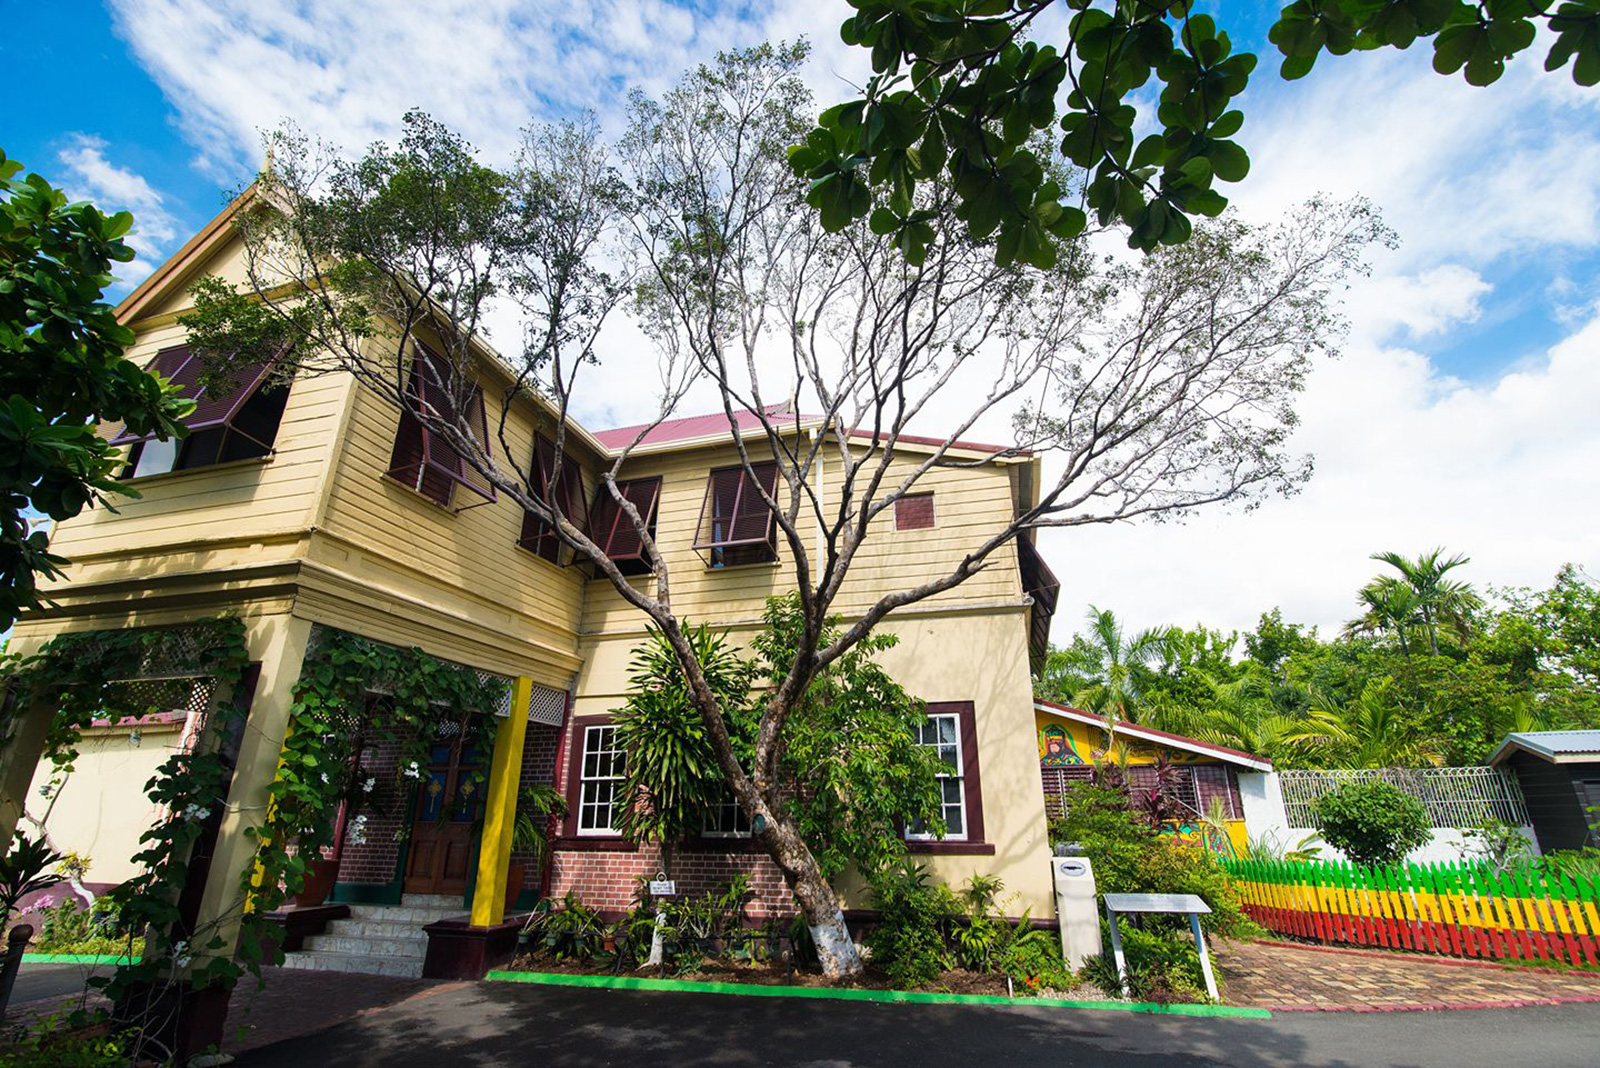 Musician's homes – Bob Marley Museum in Kingston